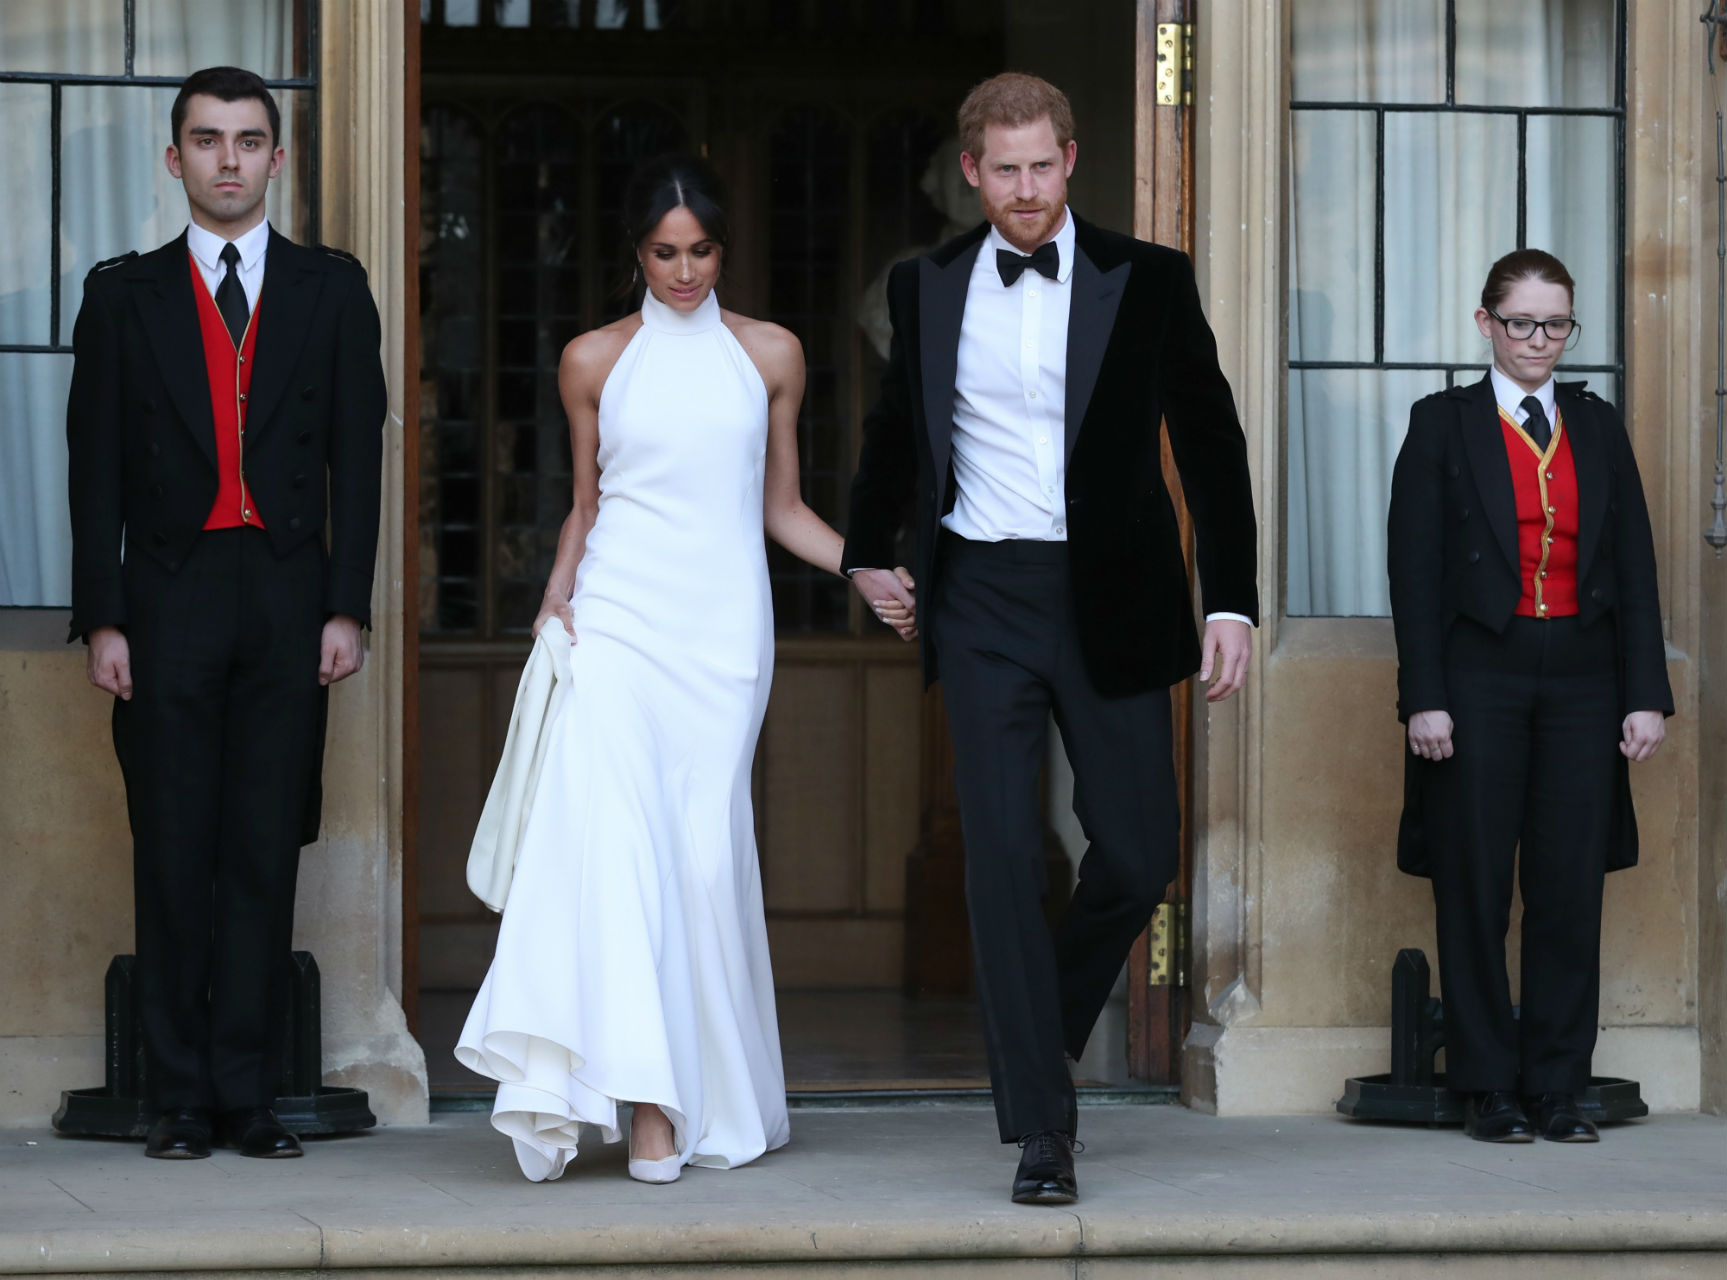 Meghan Markle in her second wedding dress, a bespoke Stella McCartney evening gown